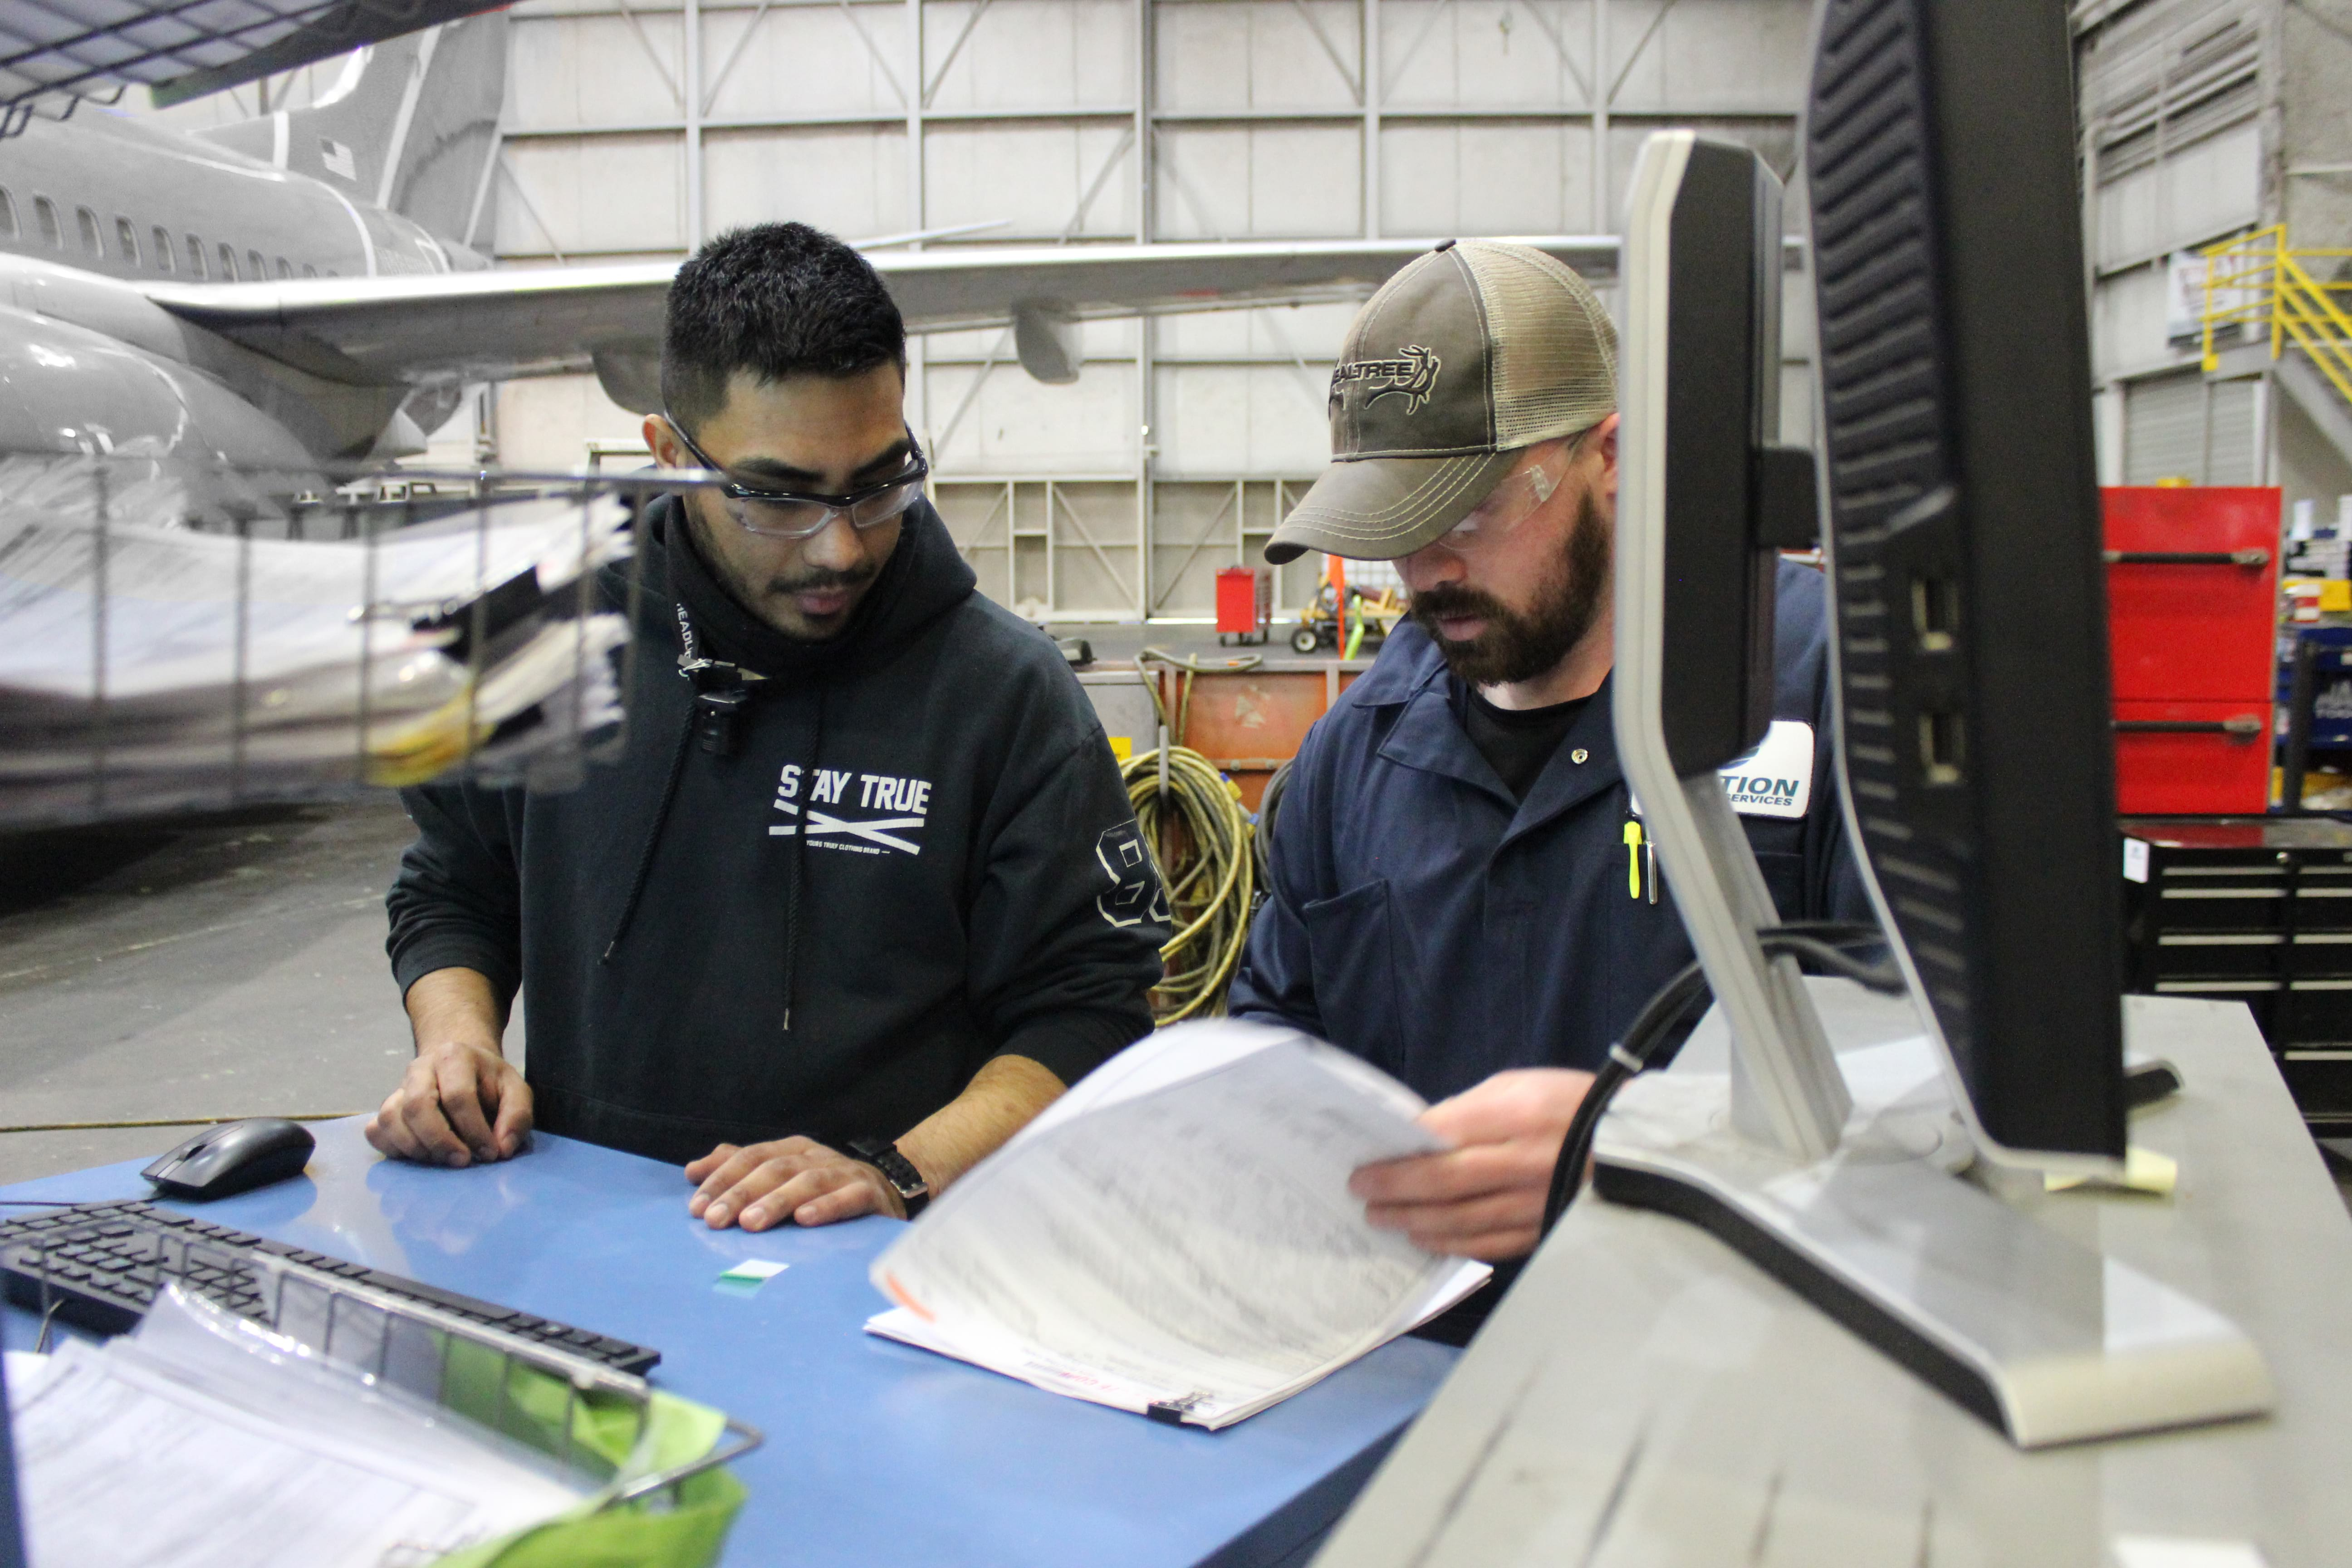 An Apprentice Mechanic learns how accurate and thorough paperwork contribute to flight safety.